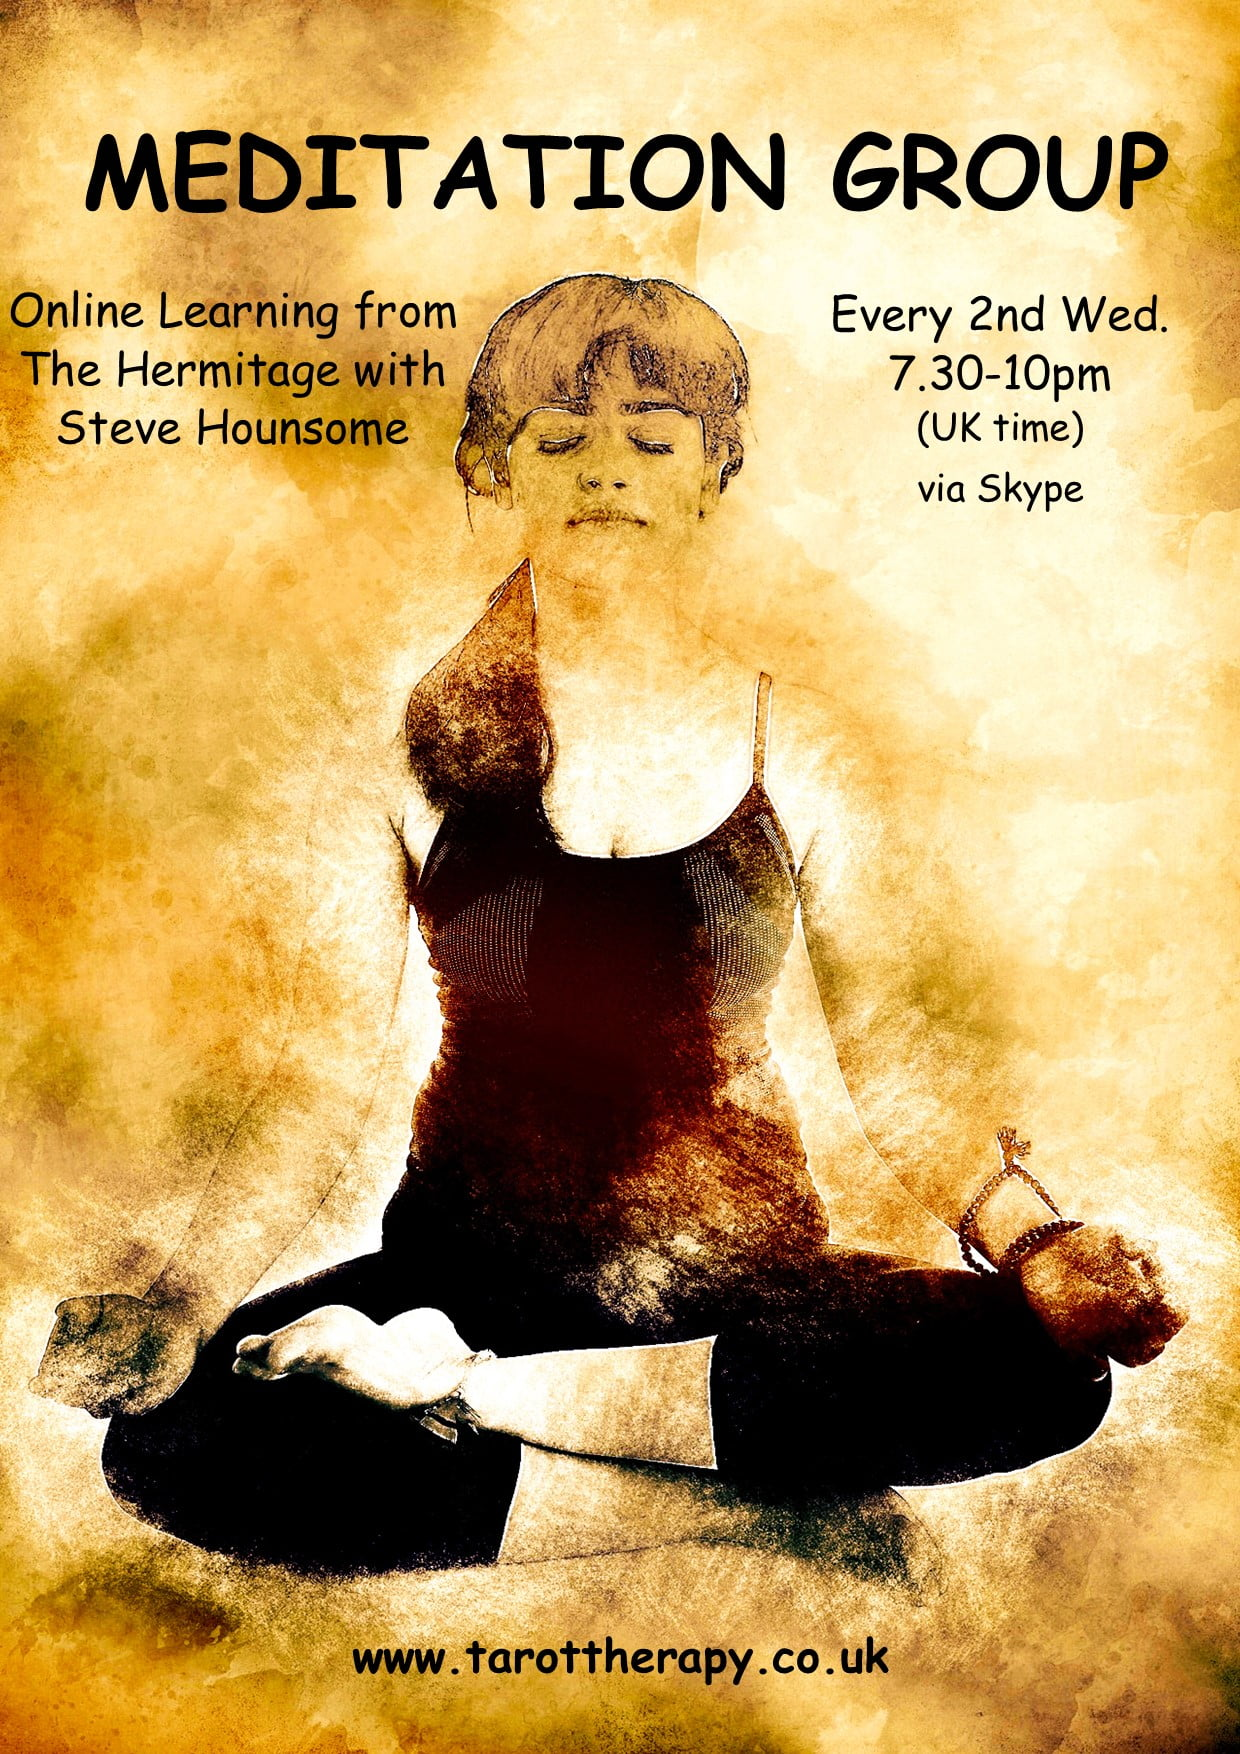 Online Meditation Group with Steve Hounsome